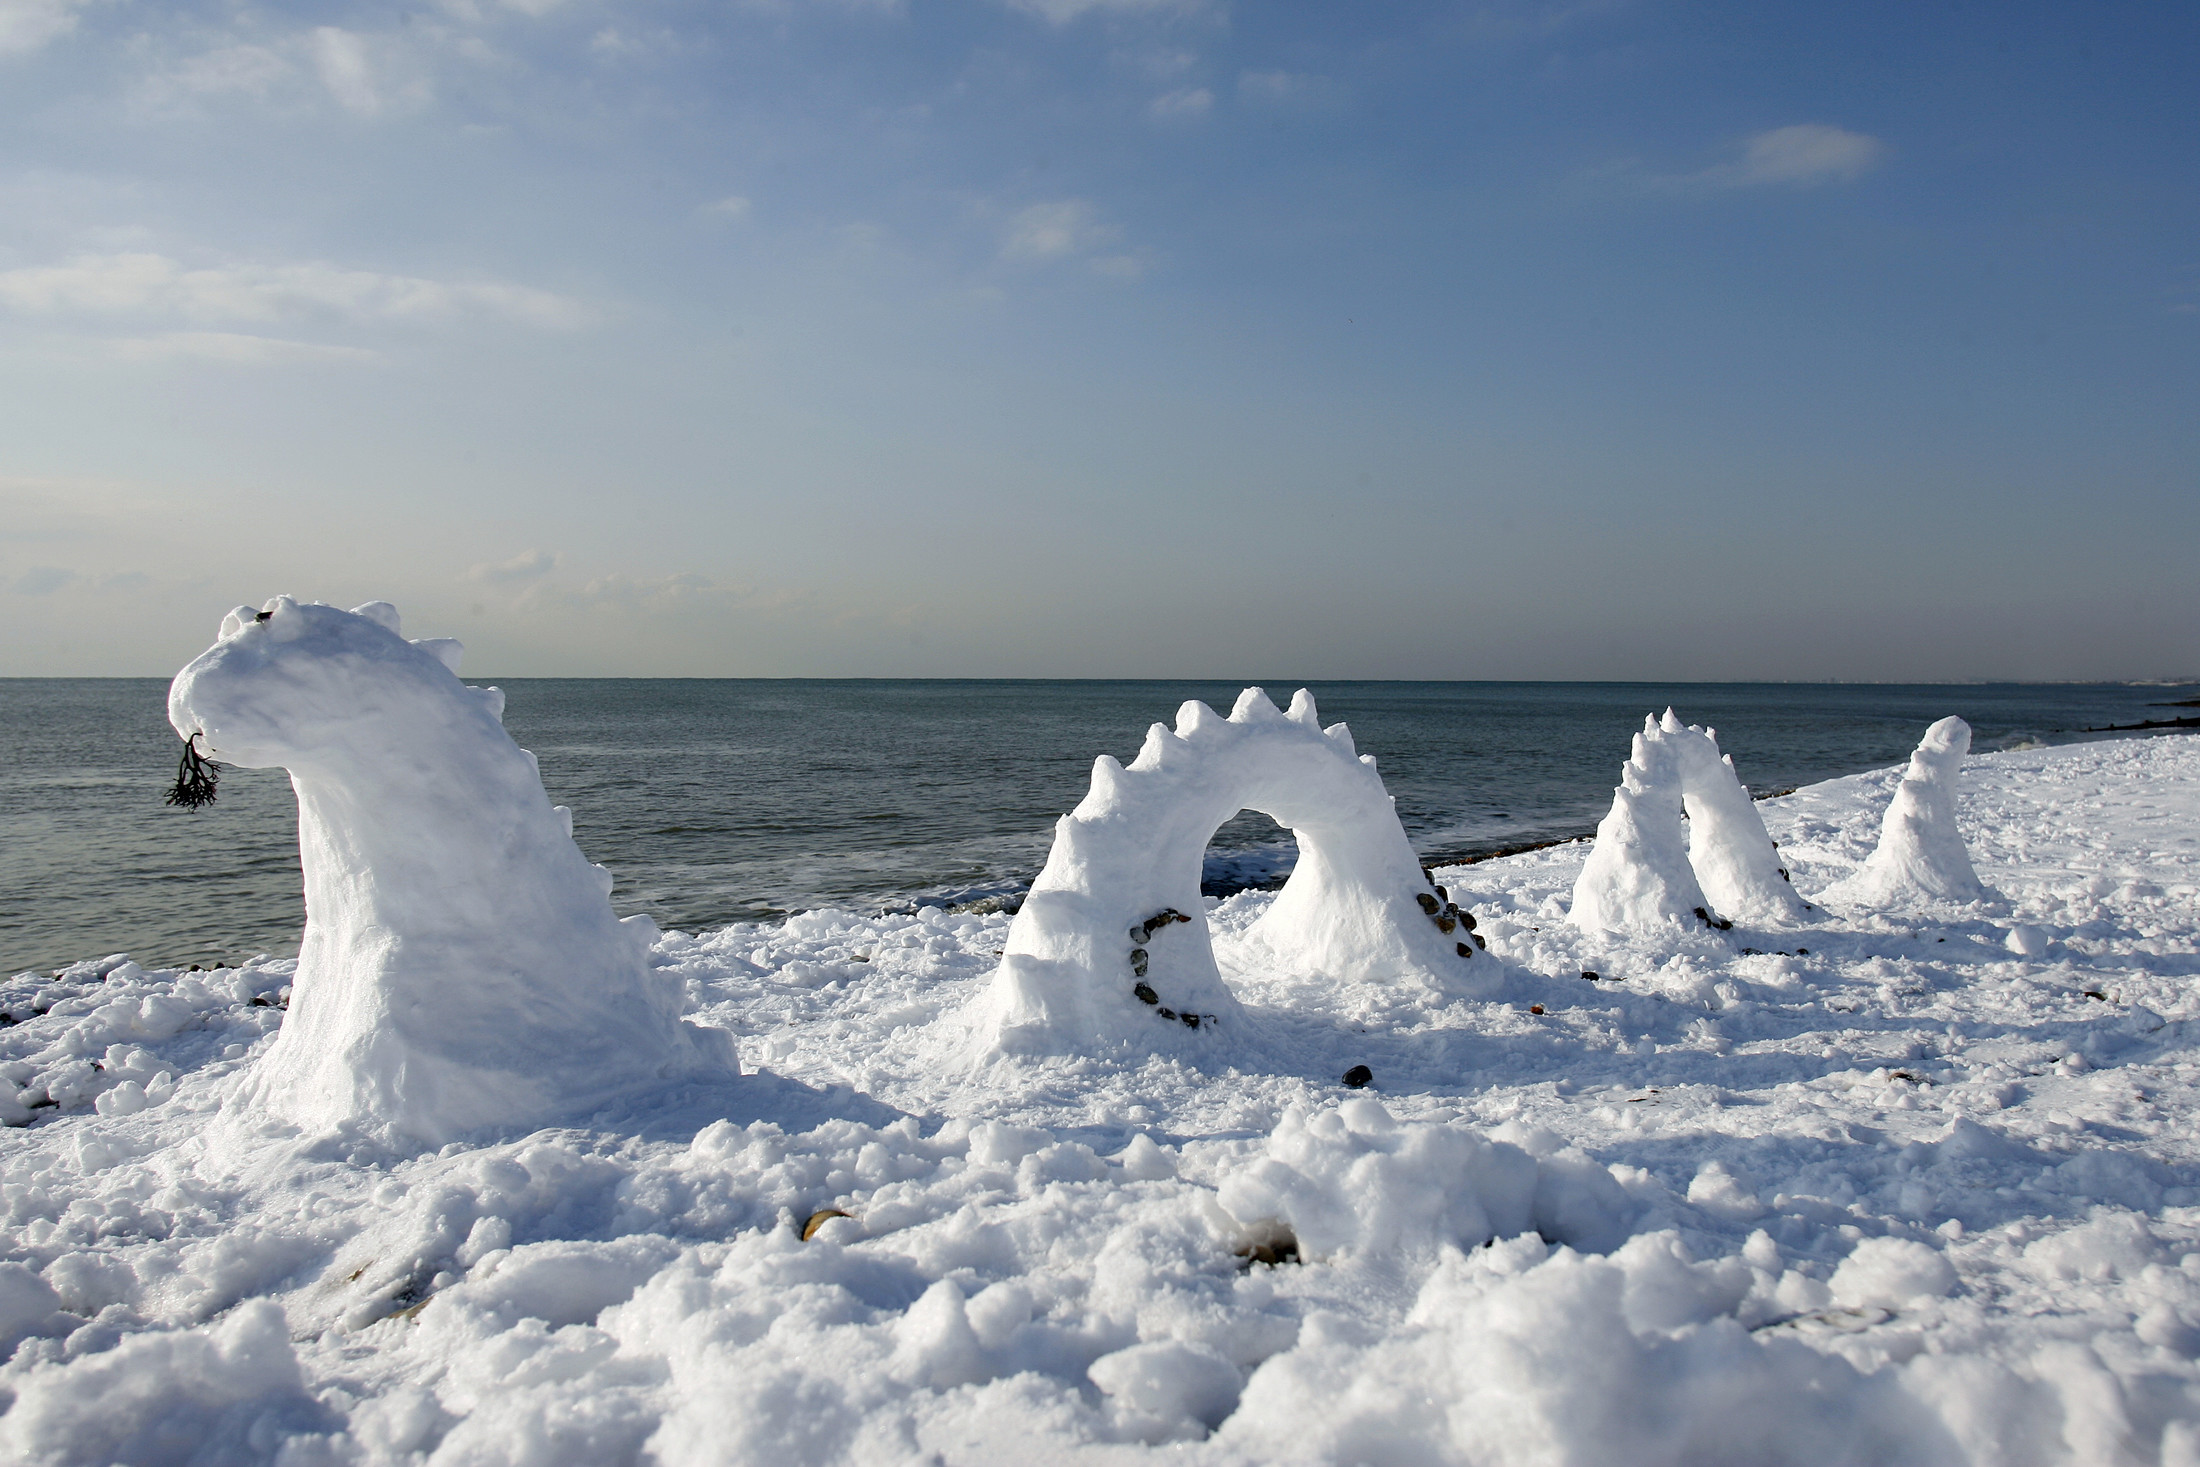 2200x1467 A snowy model of the Loch Ness Monster is one of the ways the monster is